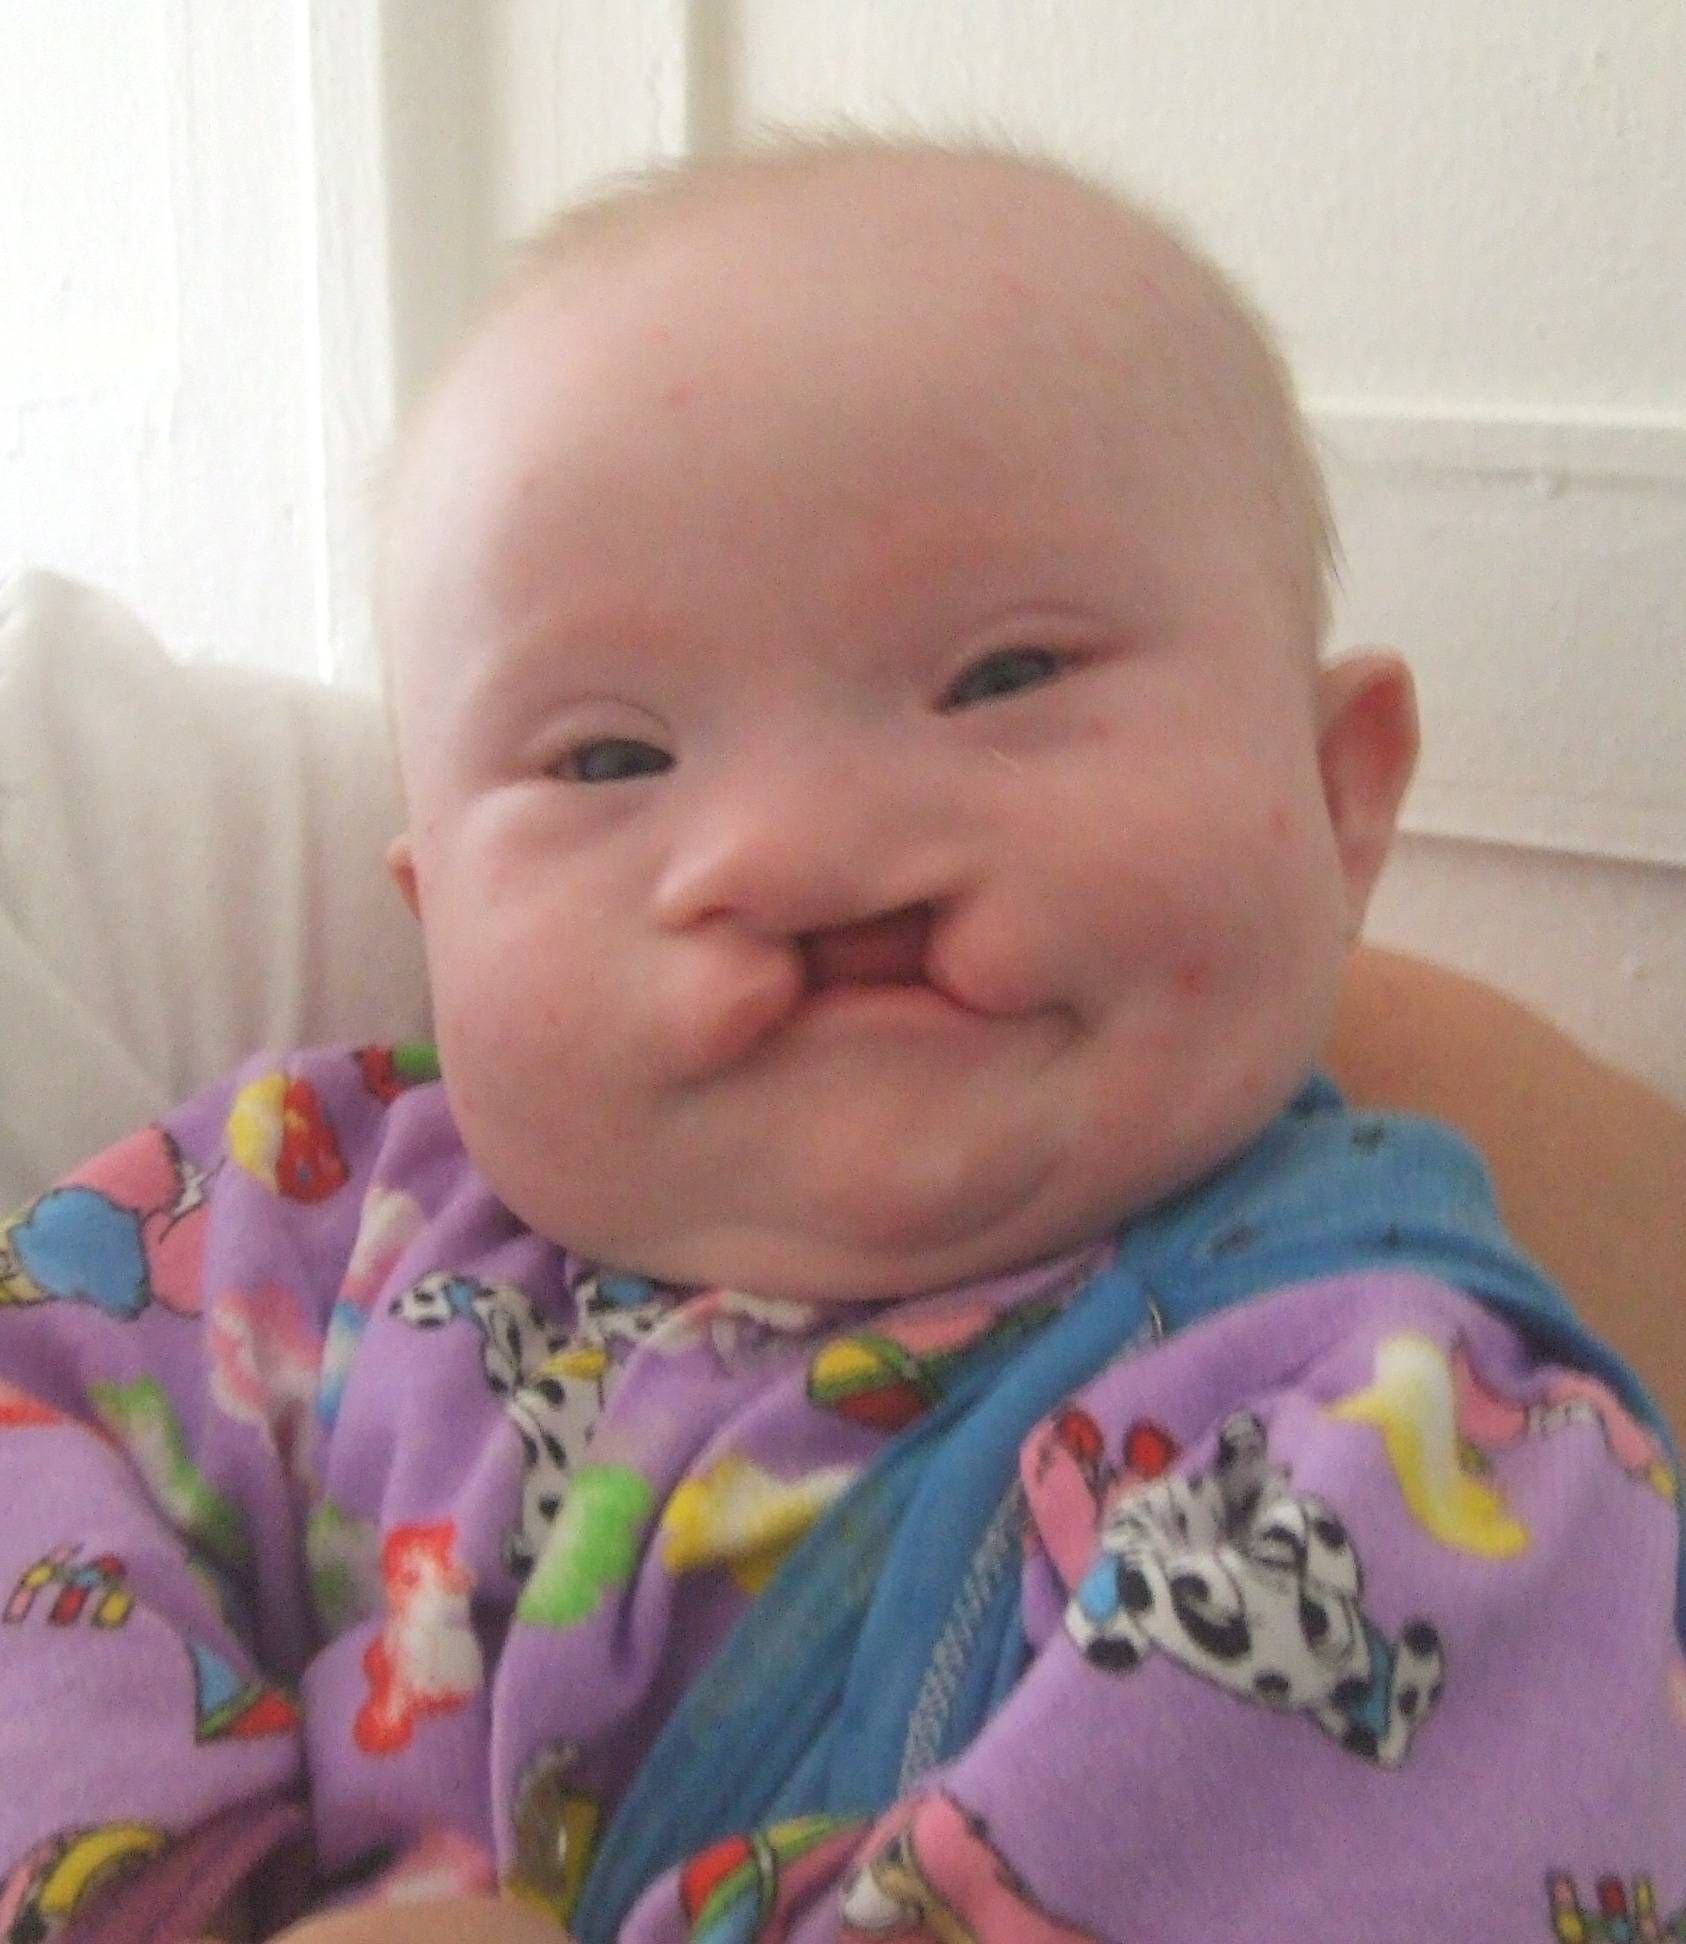 Kids with Down Syndrome find a unusual name for your new baby